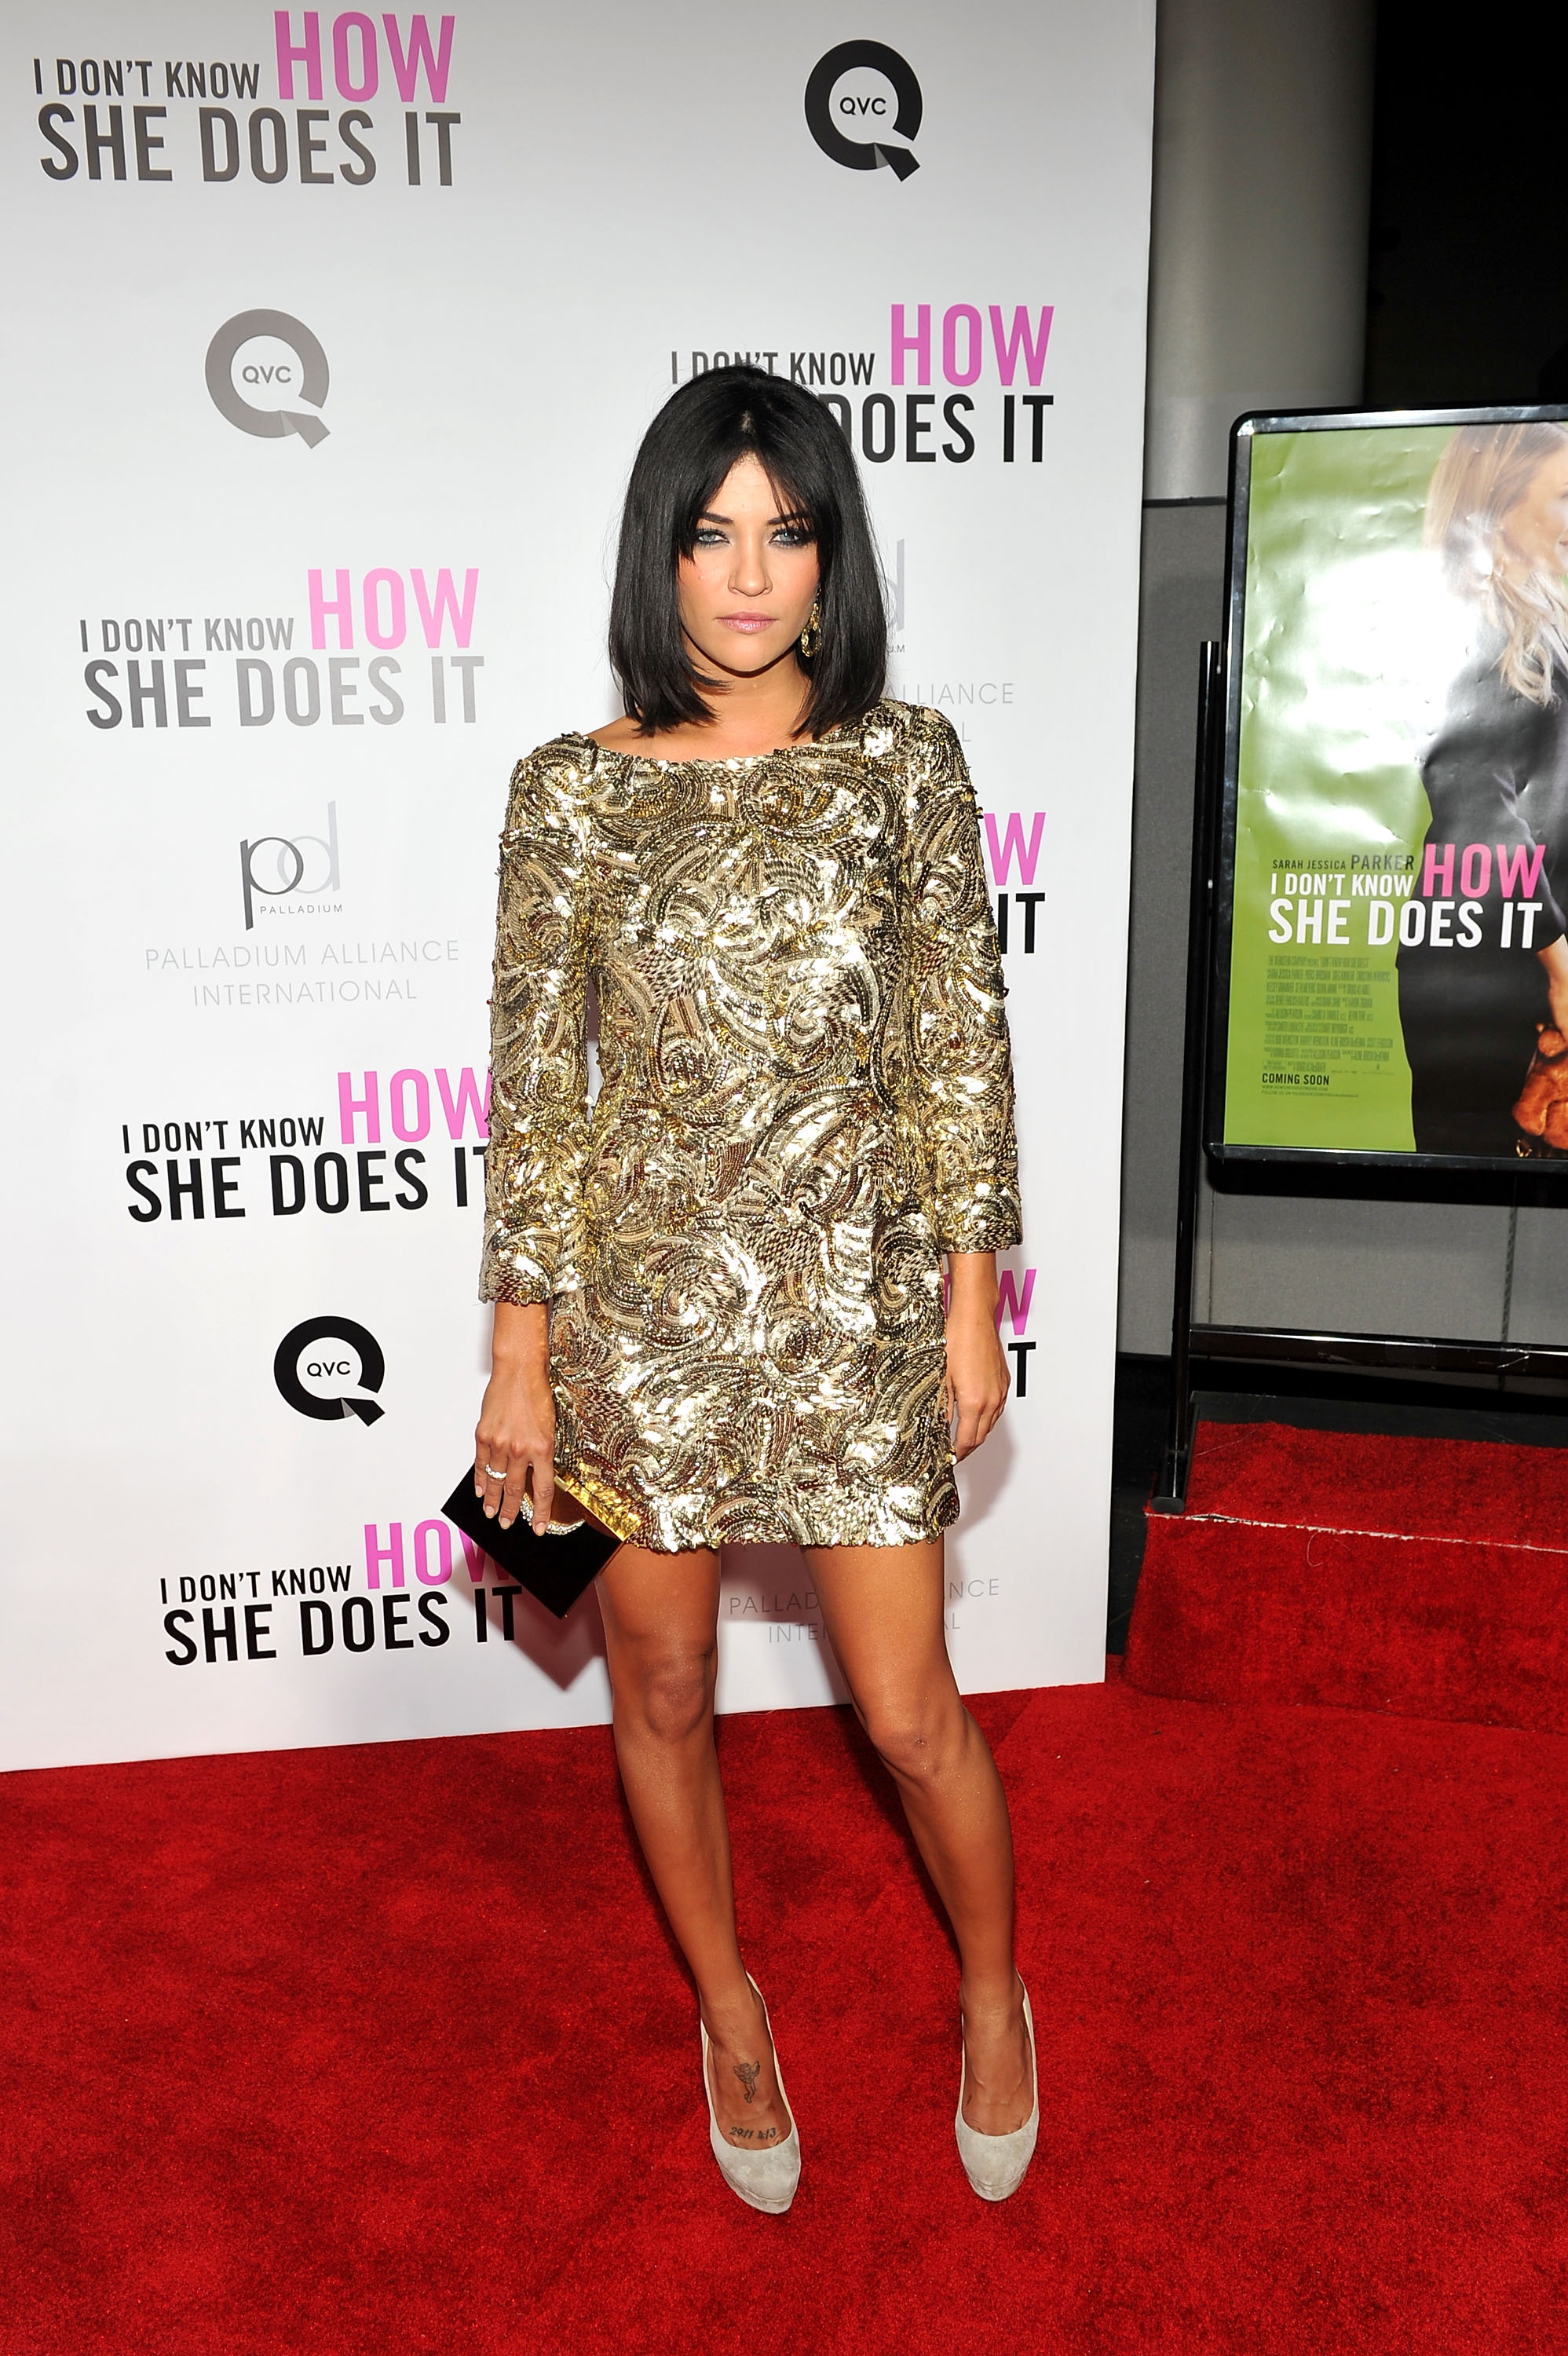 Jessica Szohr sparkled at the premiere.